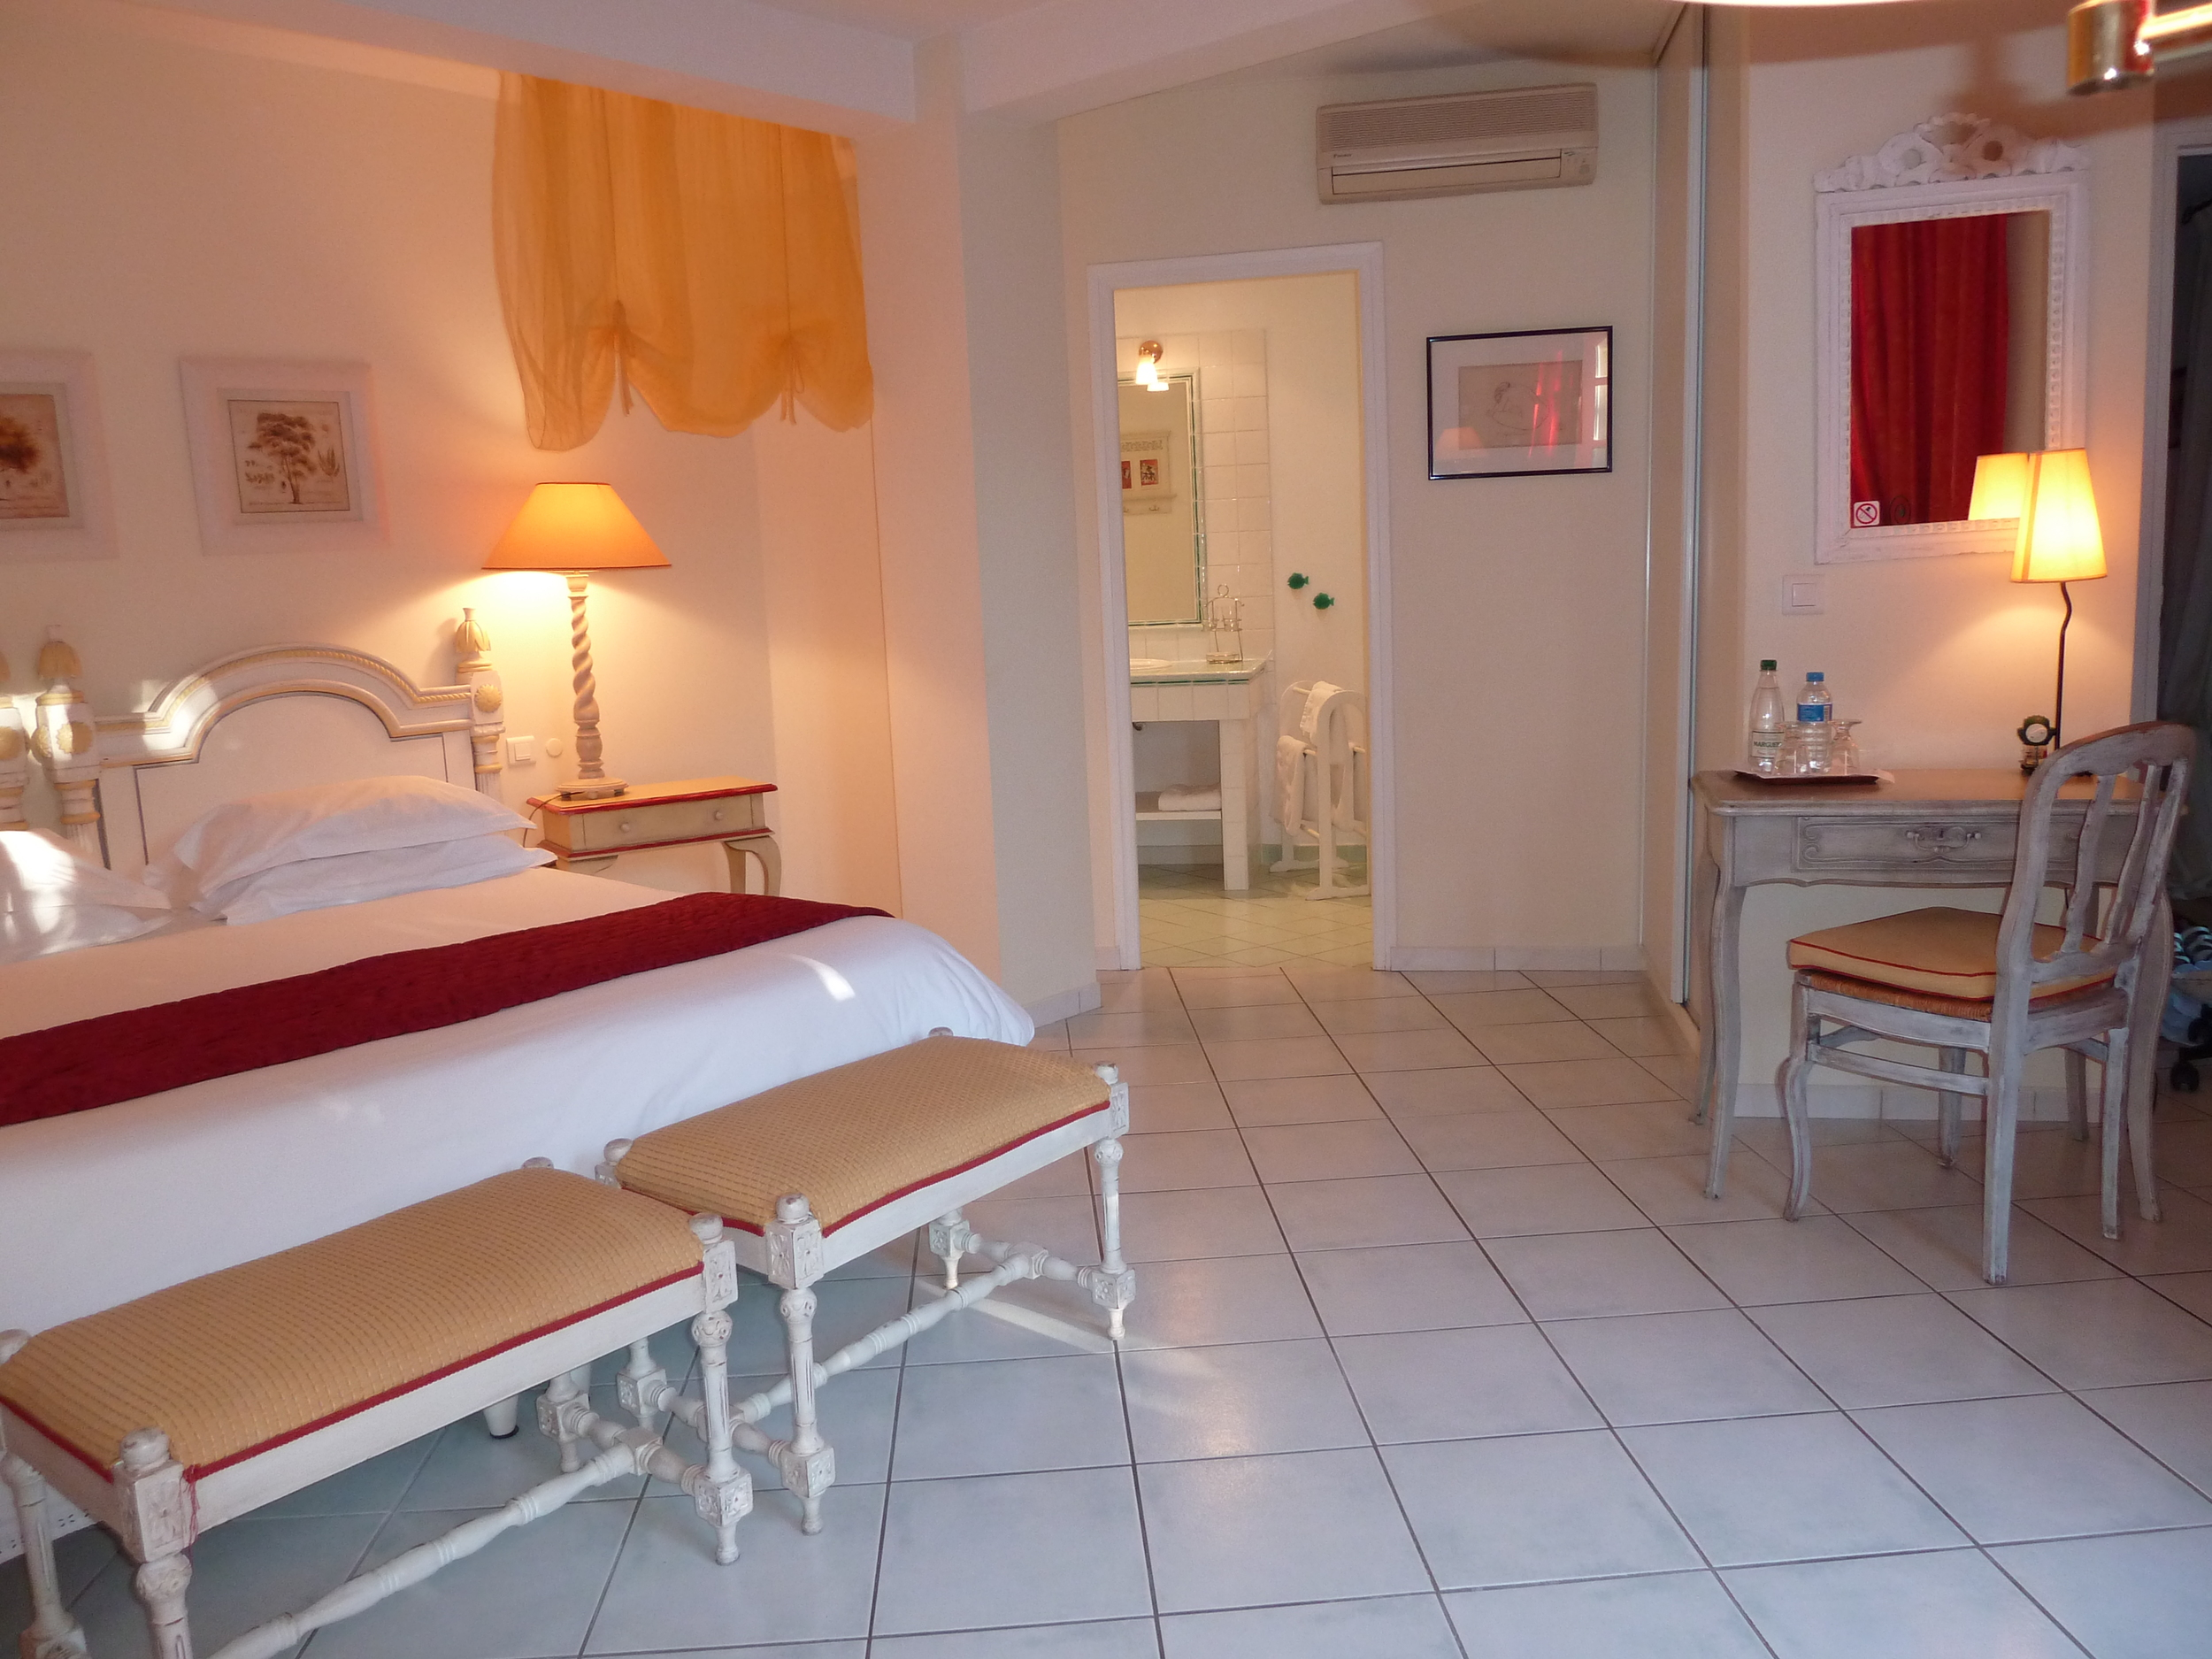 Chambre d'hôte spacieuse à grand lit or twin beds